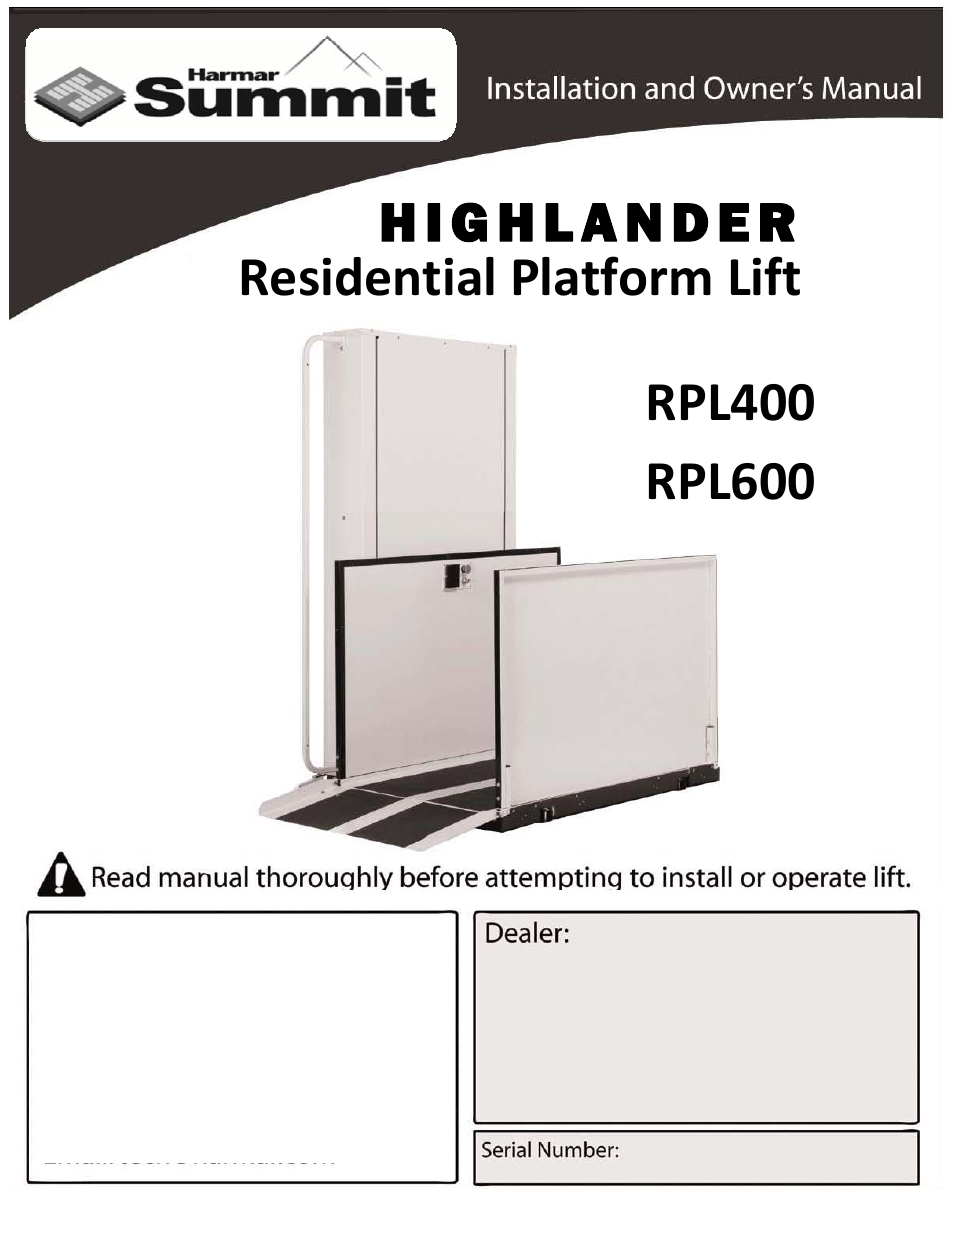 Harmar Mobility LIFTS RPL400 User Manual | 22 pages | Also ... on